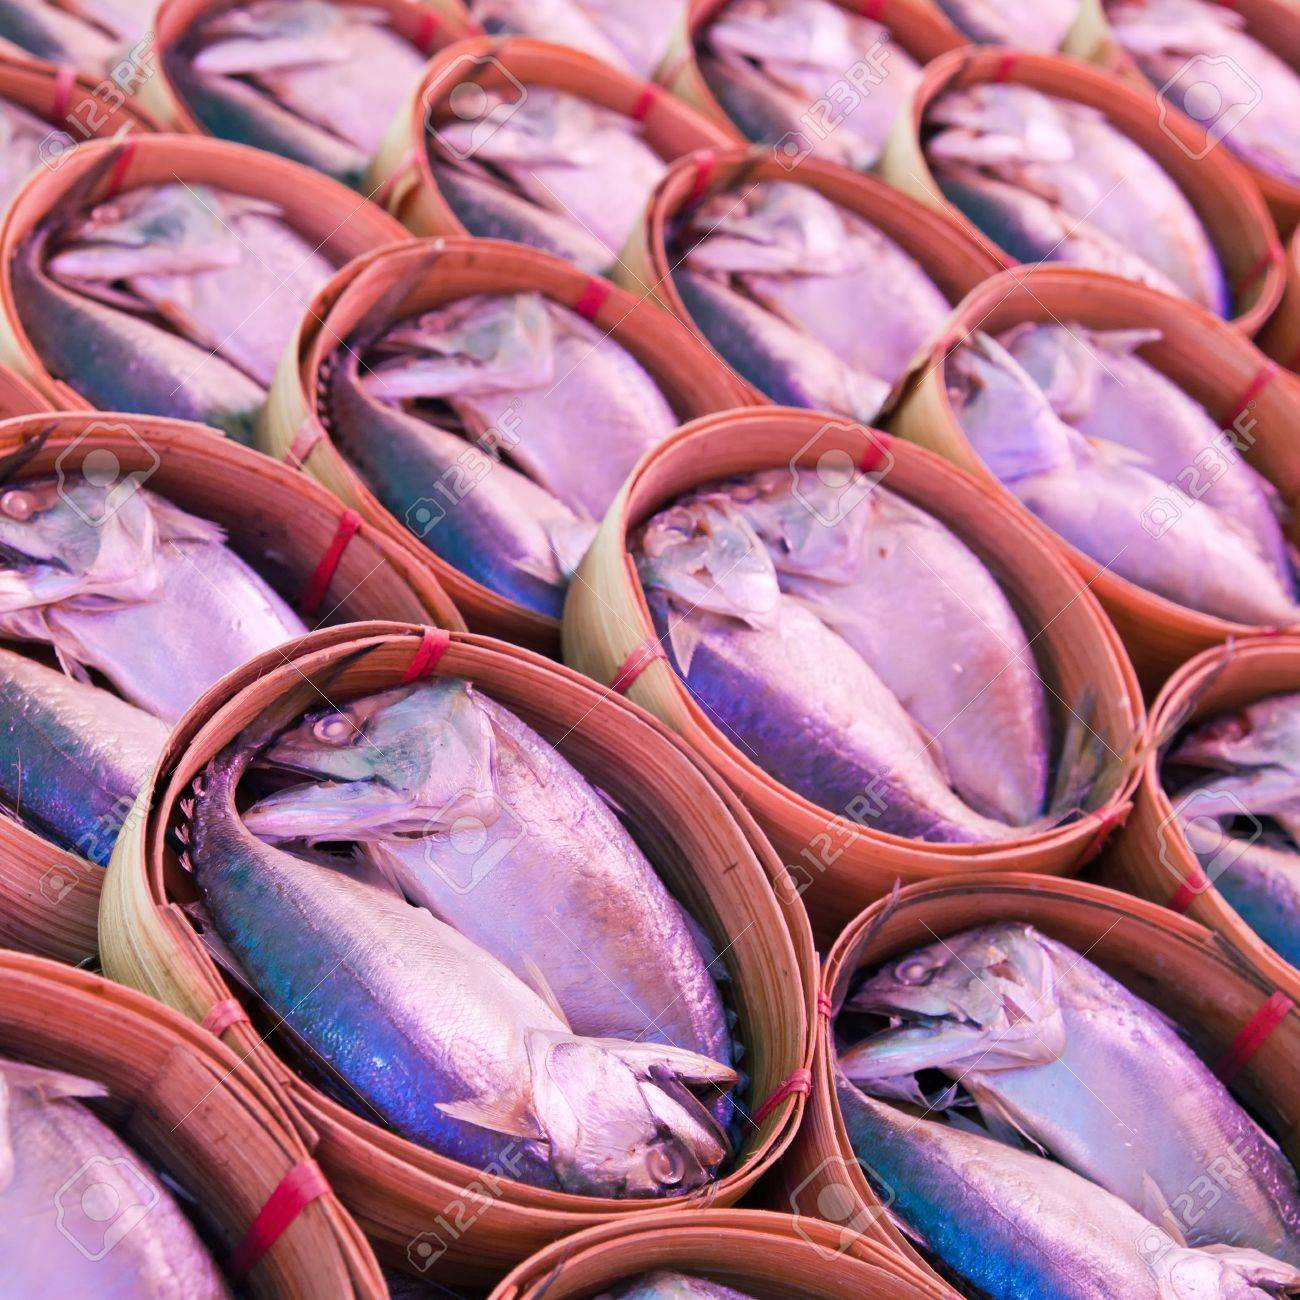 Mackerel fish in bamboo basket at market,Samutsongkram province-Thailand Stock Photo - 17267312